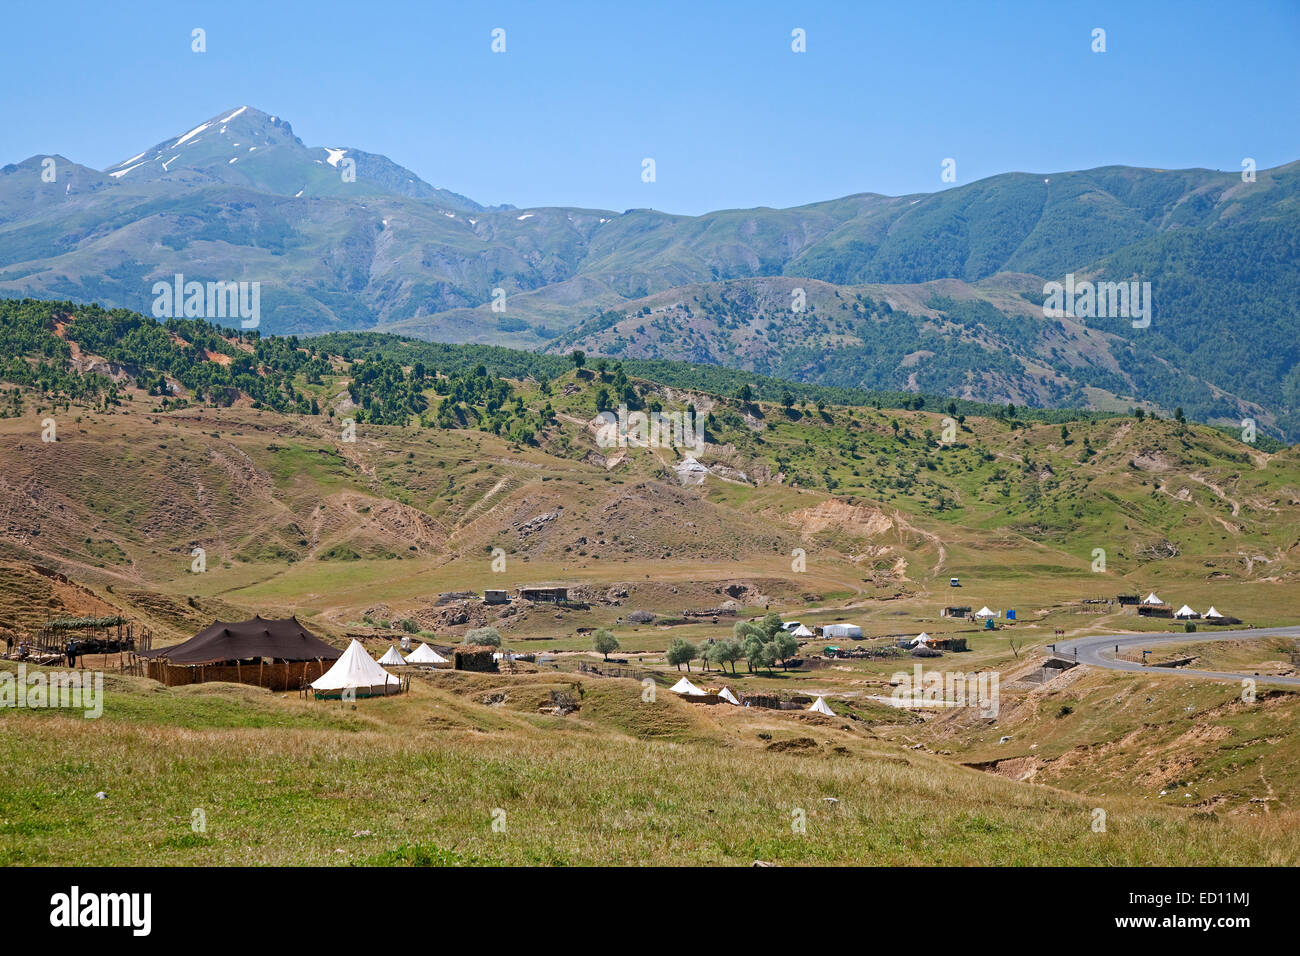 Tents in semi nomad settlement in the mountains of Eastern Anatolia, Turkey - Stock Image